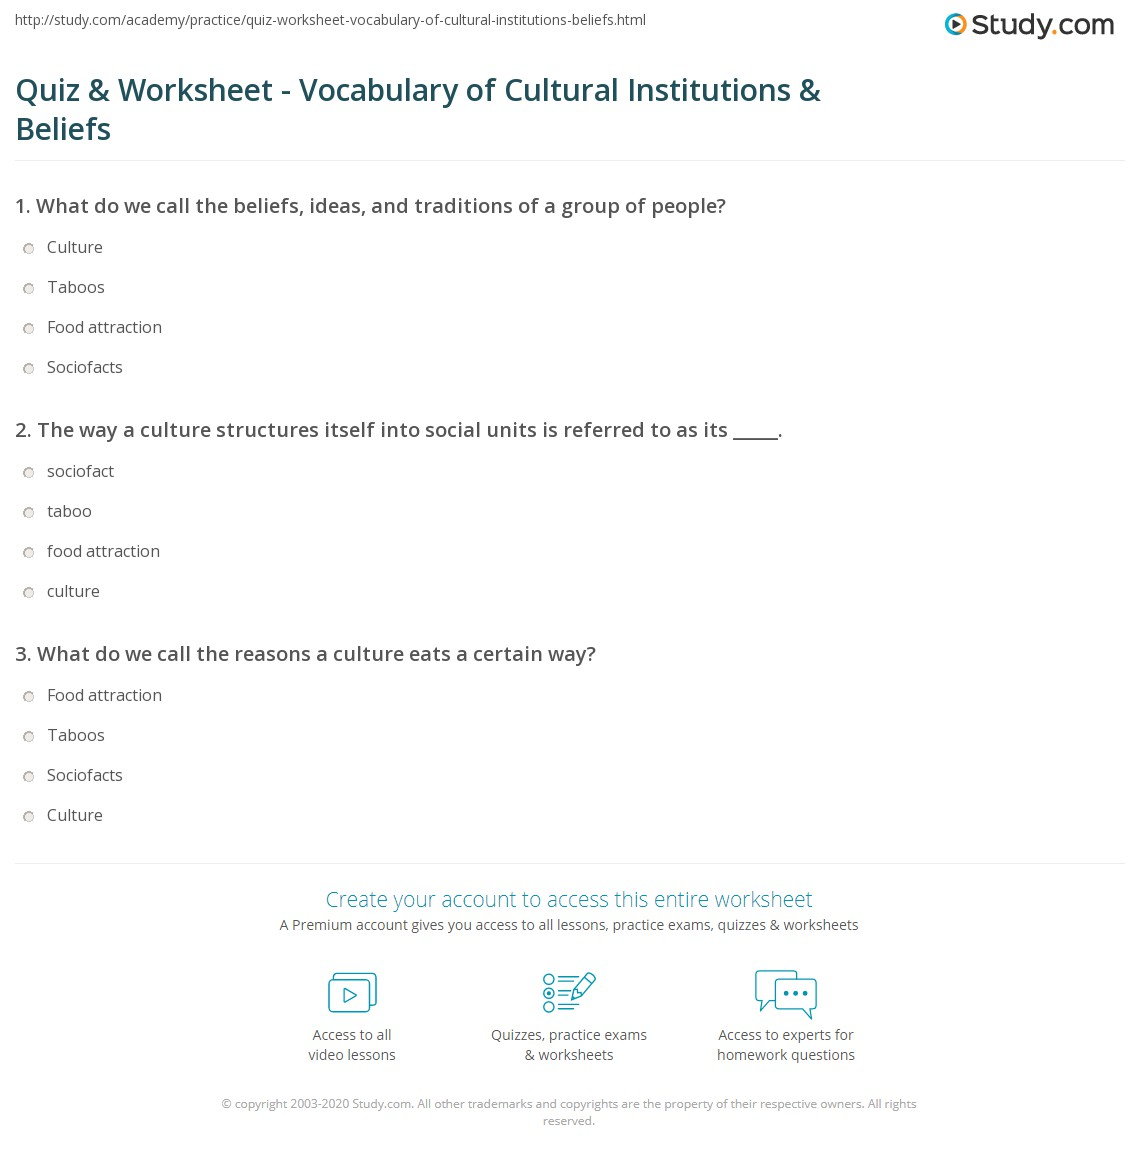 Quiz Worksheet Vocabulary Of Cultural Institutions Beliefs